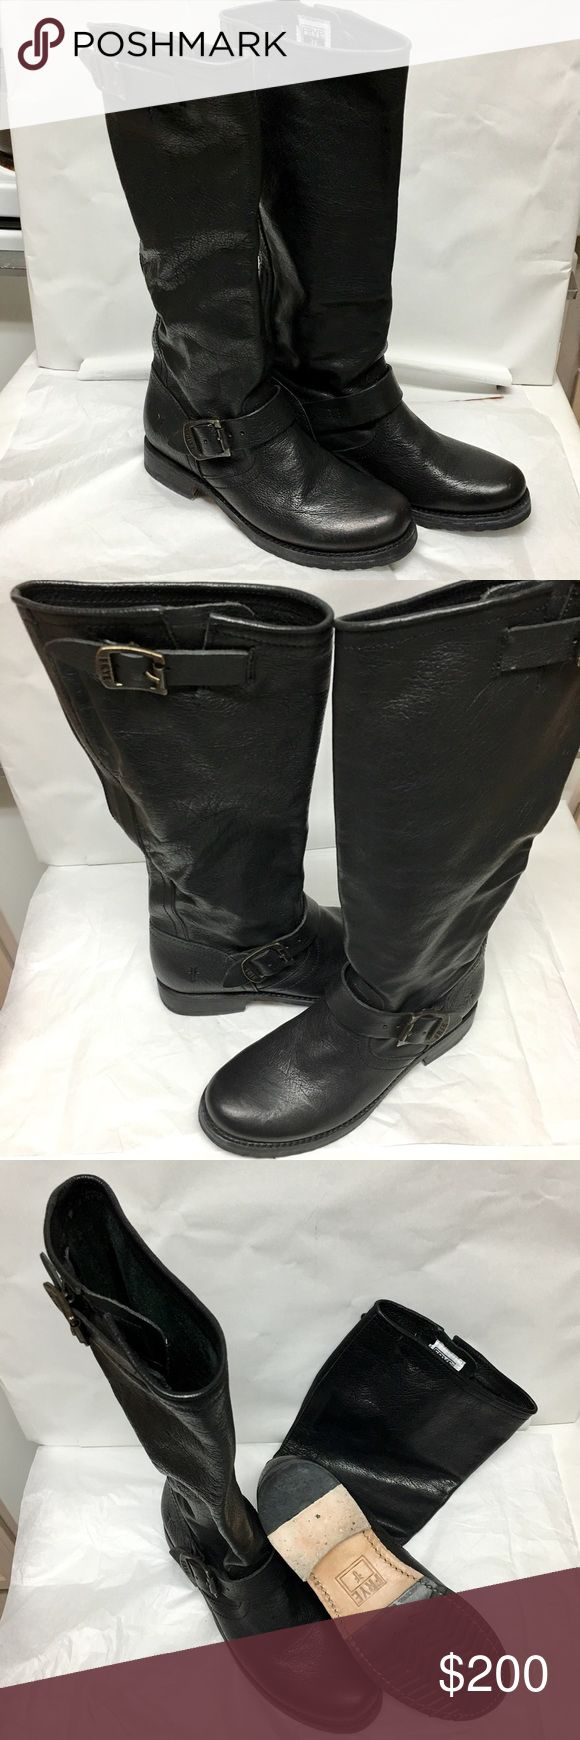 FRYE VERONICA SLOUCH BOOTS Mint condition Frye Veronica Slouch Boots size 6.5. Black leather. Frye Shoes Combat & Moto Boots